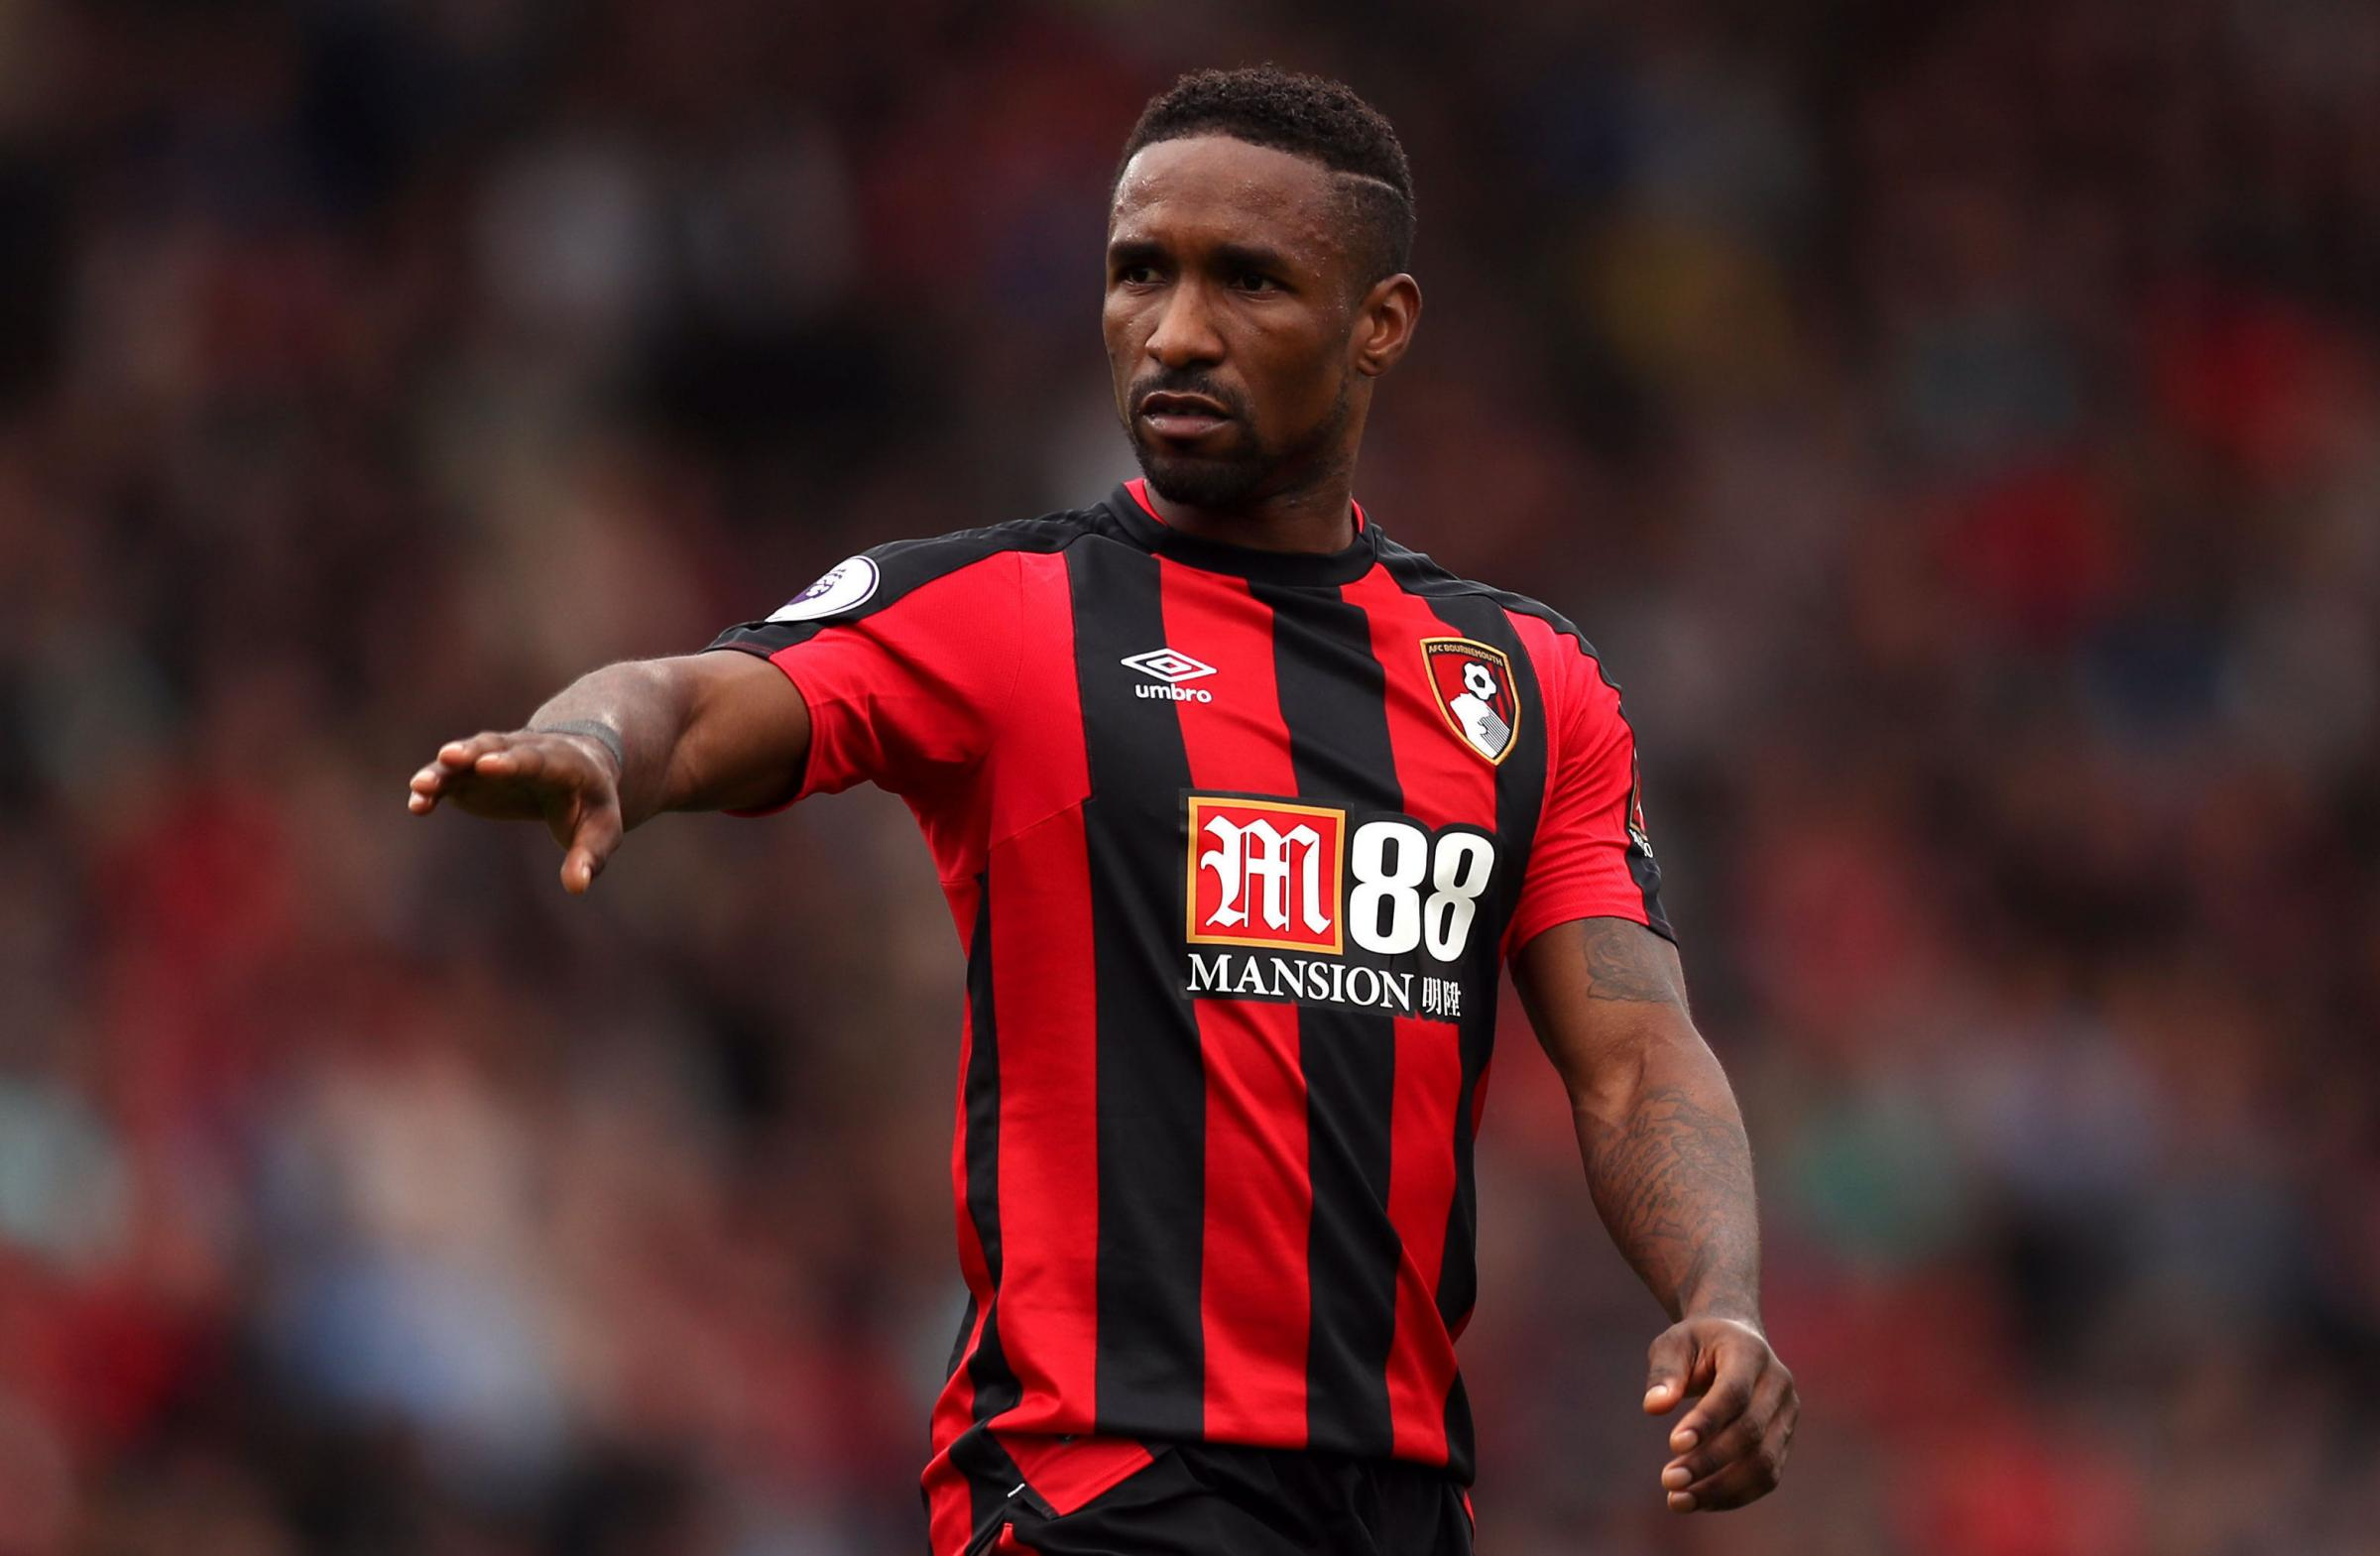 Footballer Jermain Defoe playing for Bournemouth